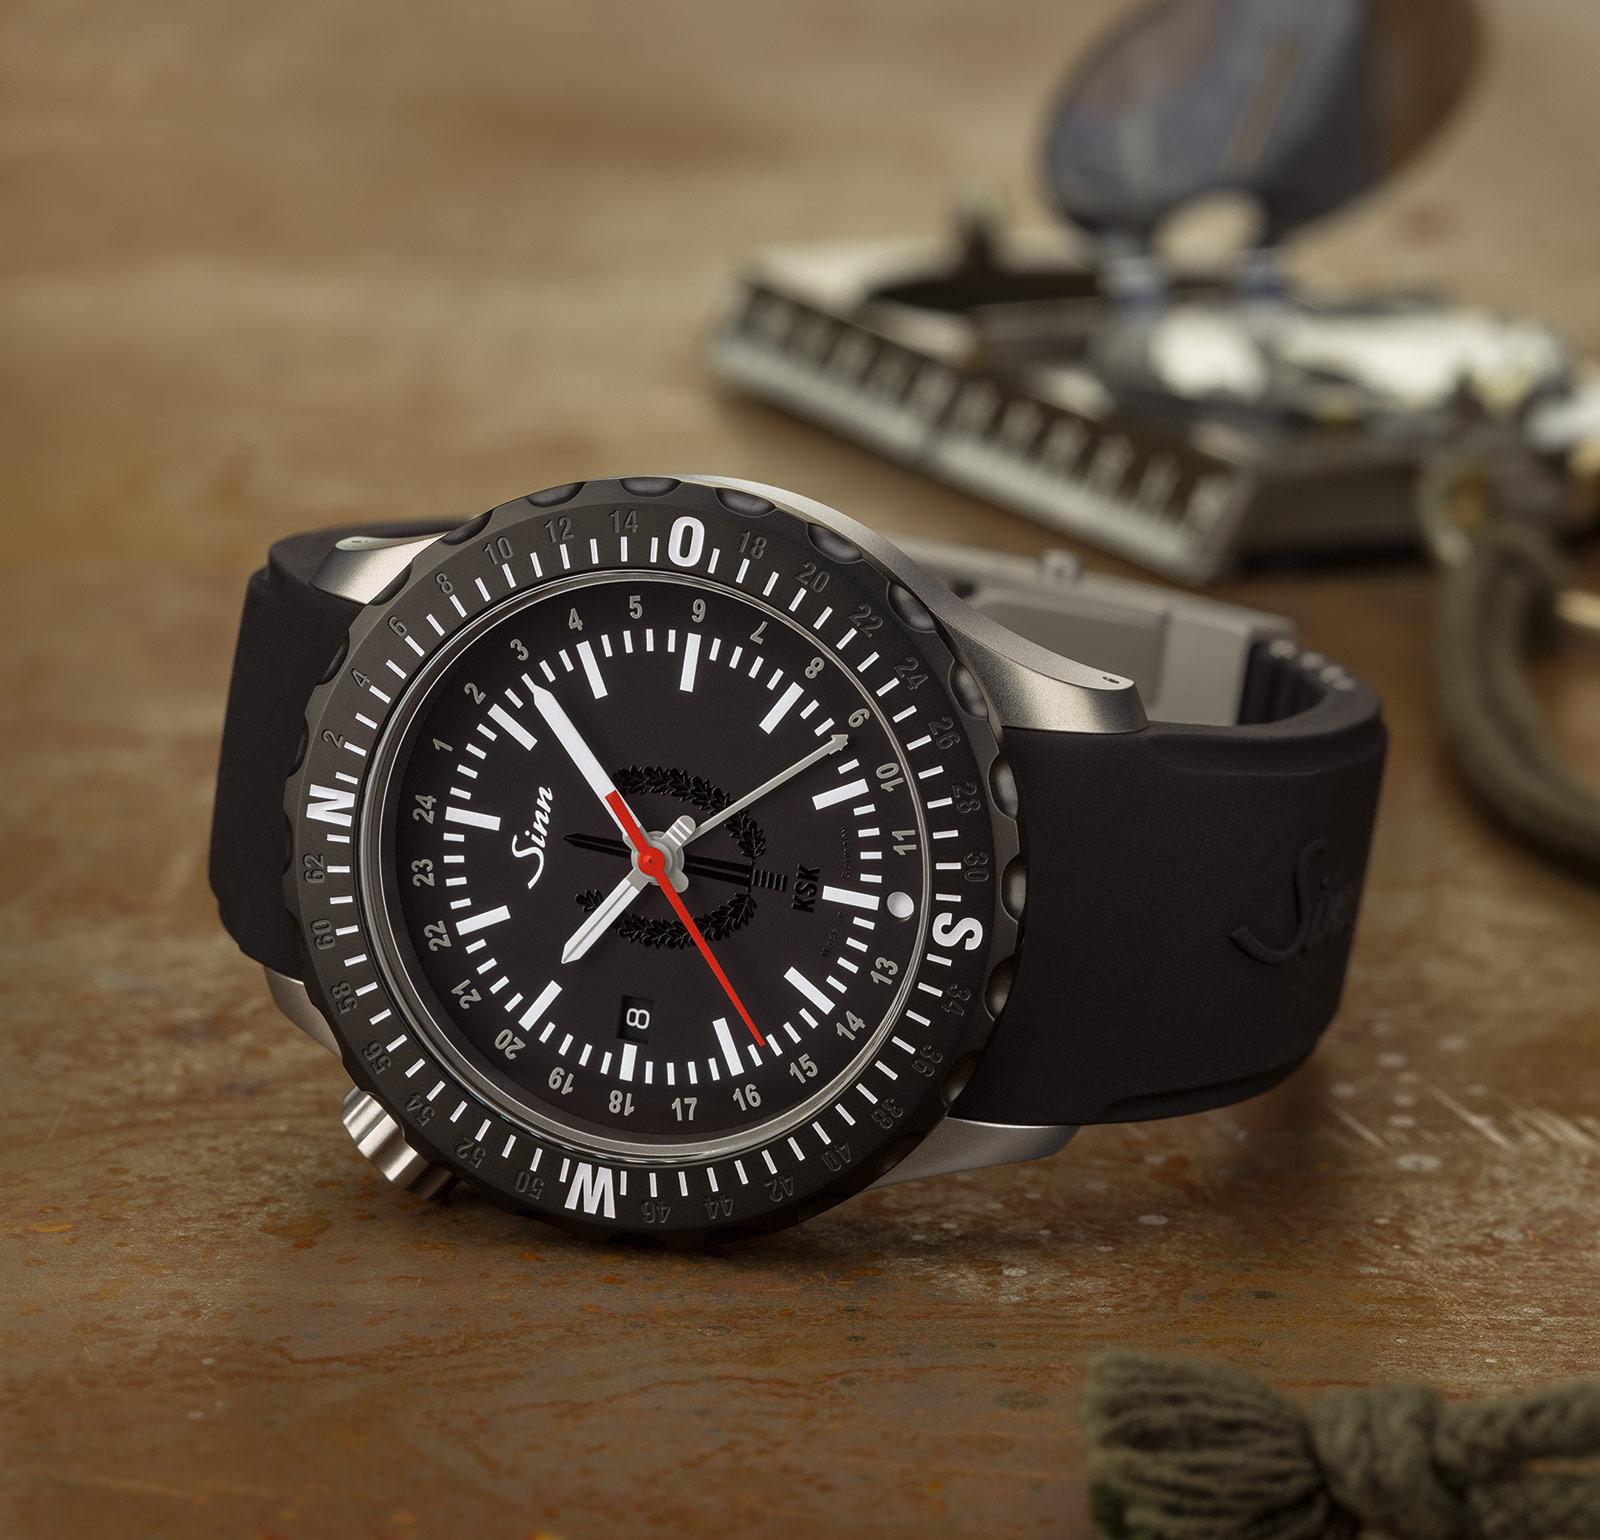 Sinn 212 KSK dive watch 3